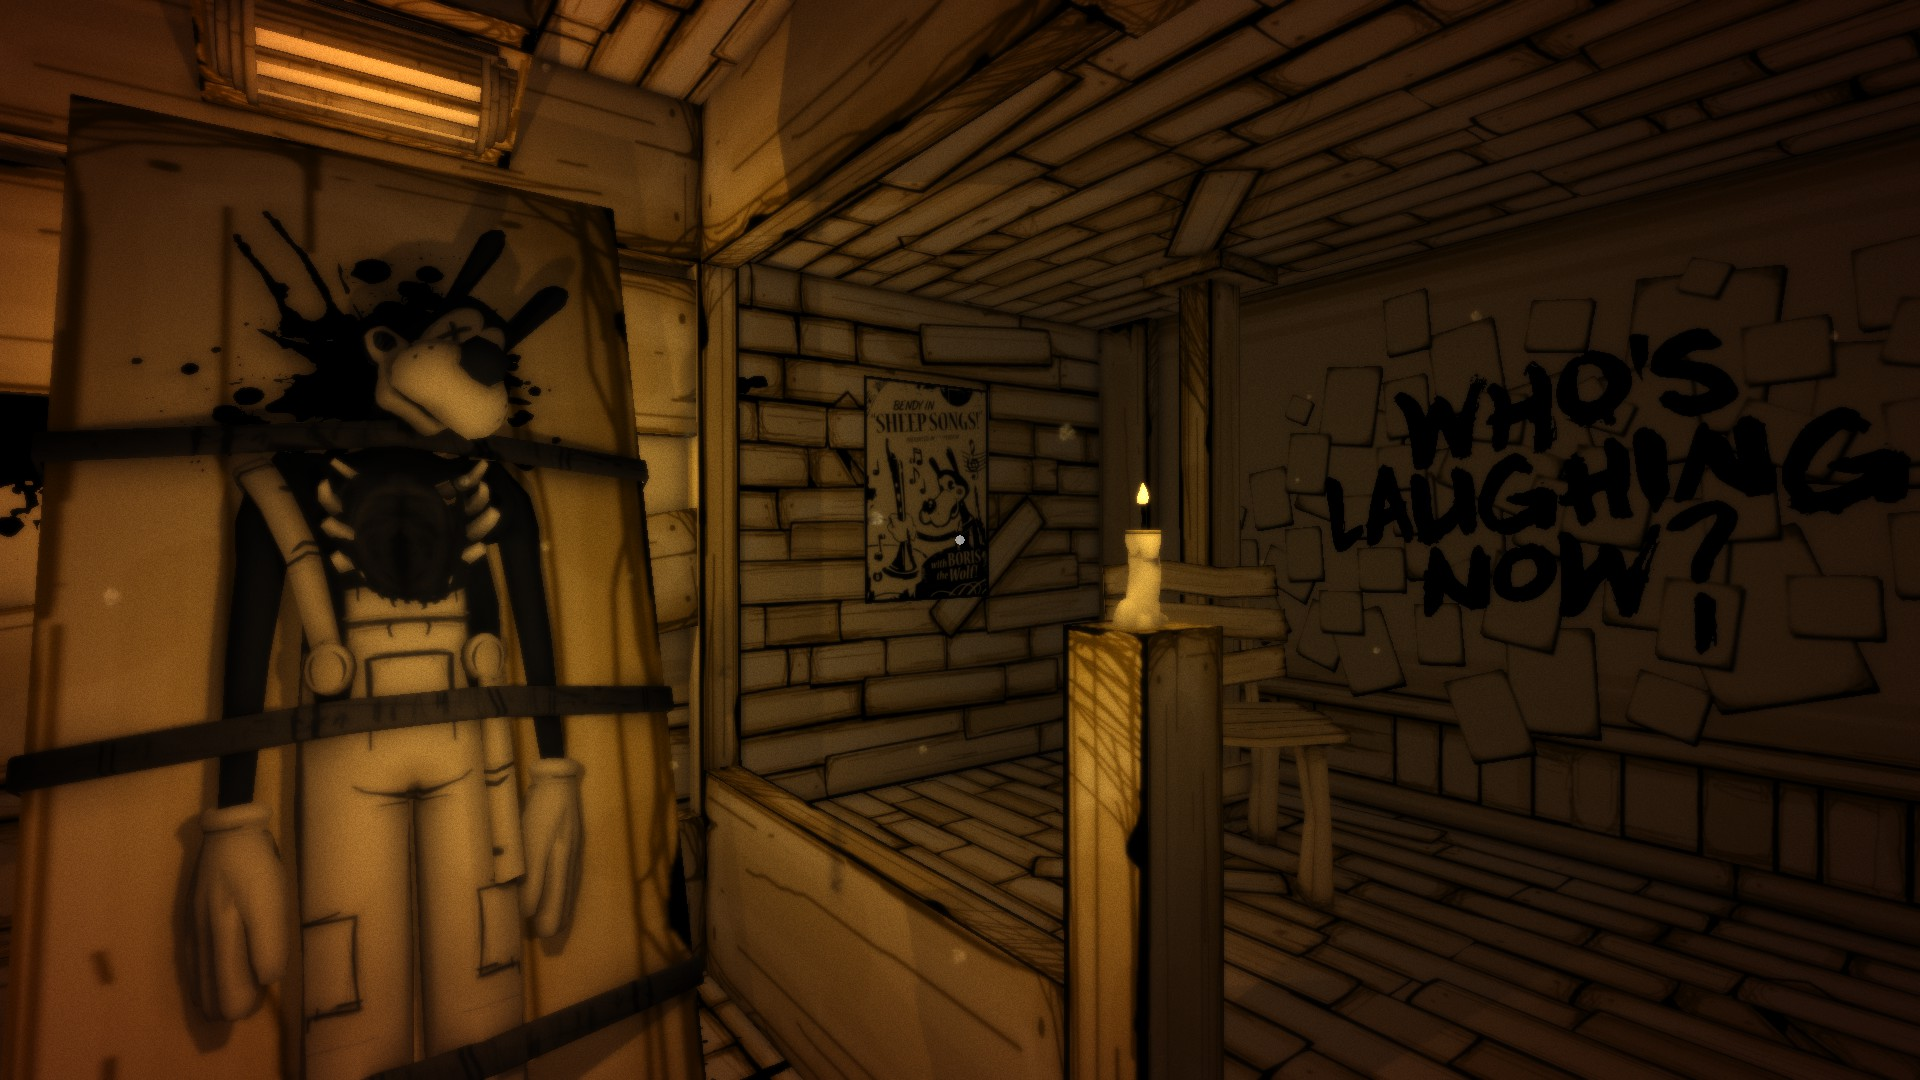 bendy and the ink machine chapter 1 walkthrough ps4